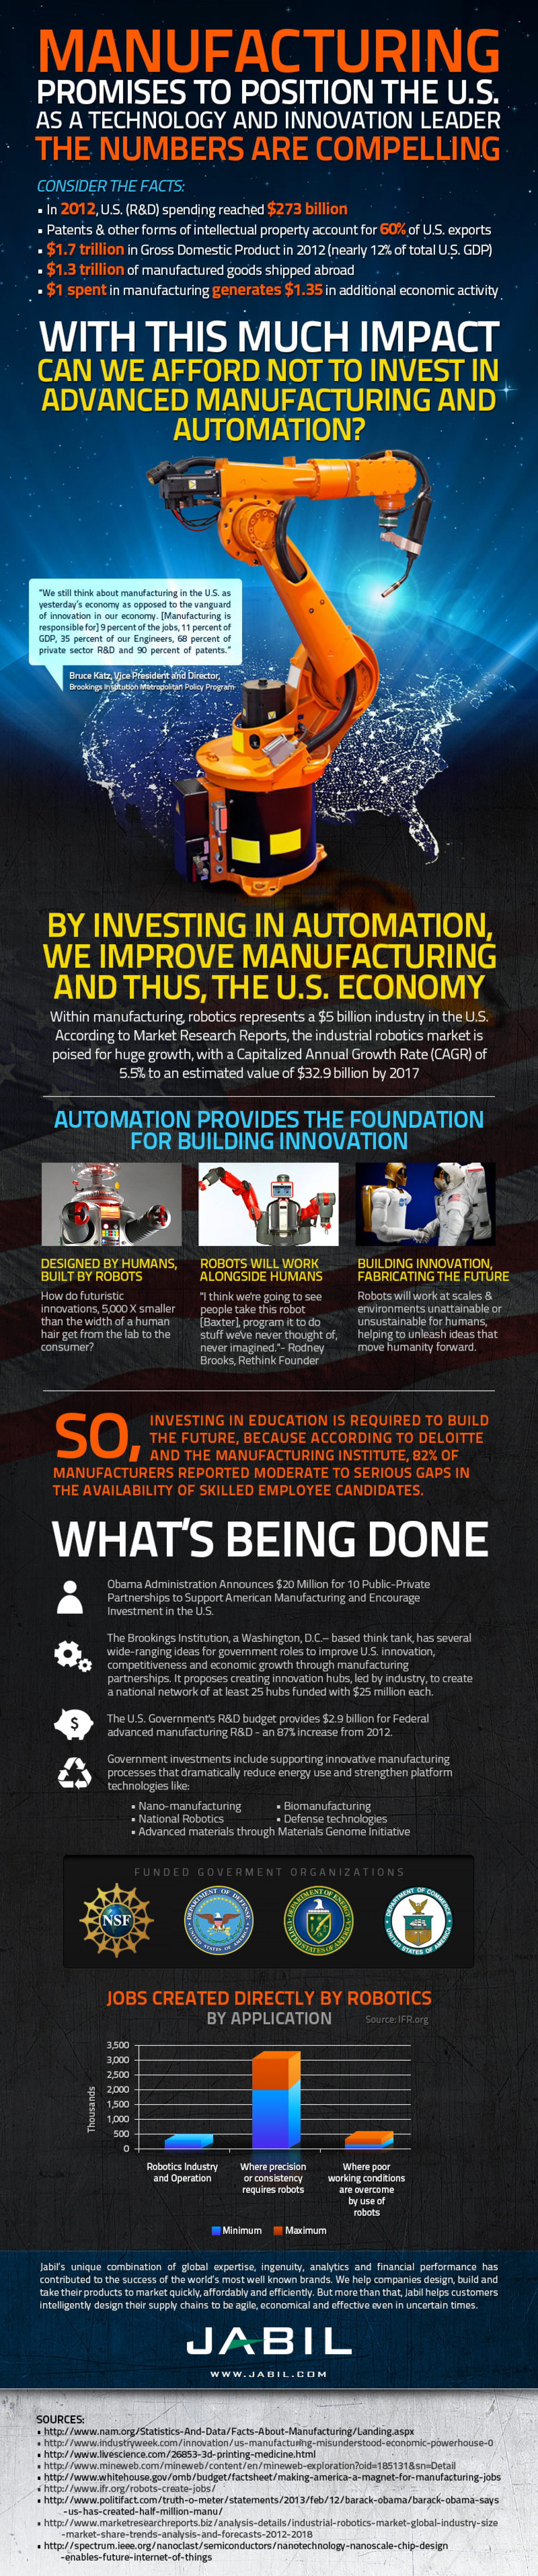 Leading With Innovation Through U.S. Manufacturing Infographic